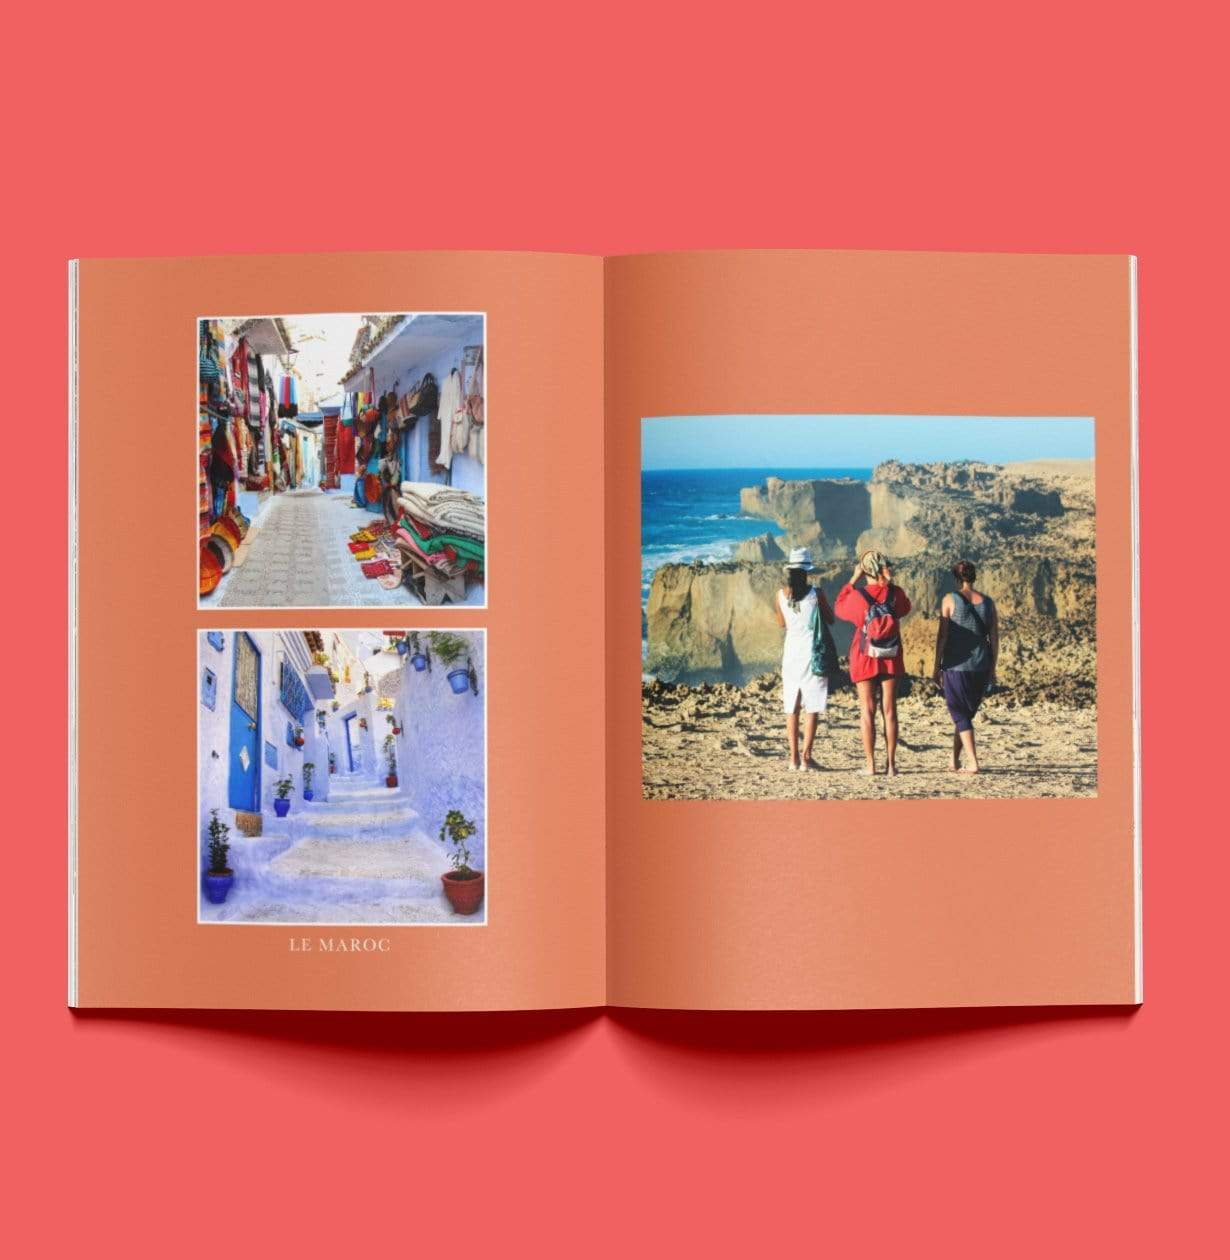 Valentine's Day Photo Book Ideas - A Vision Book